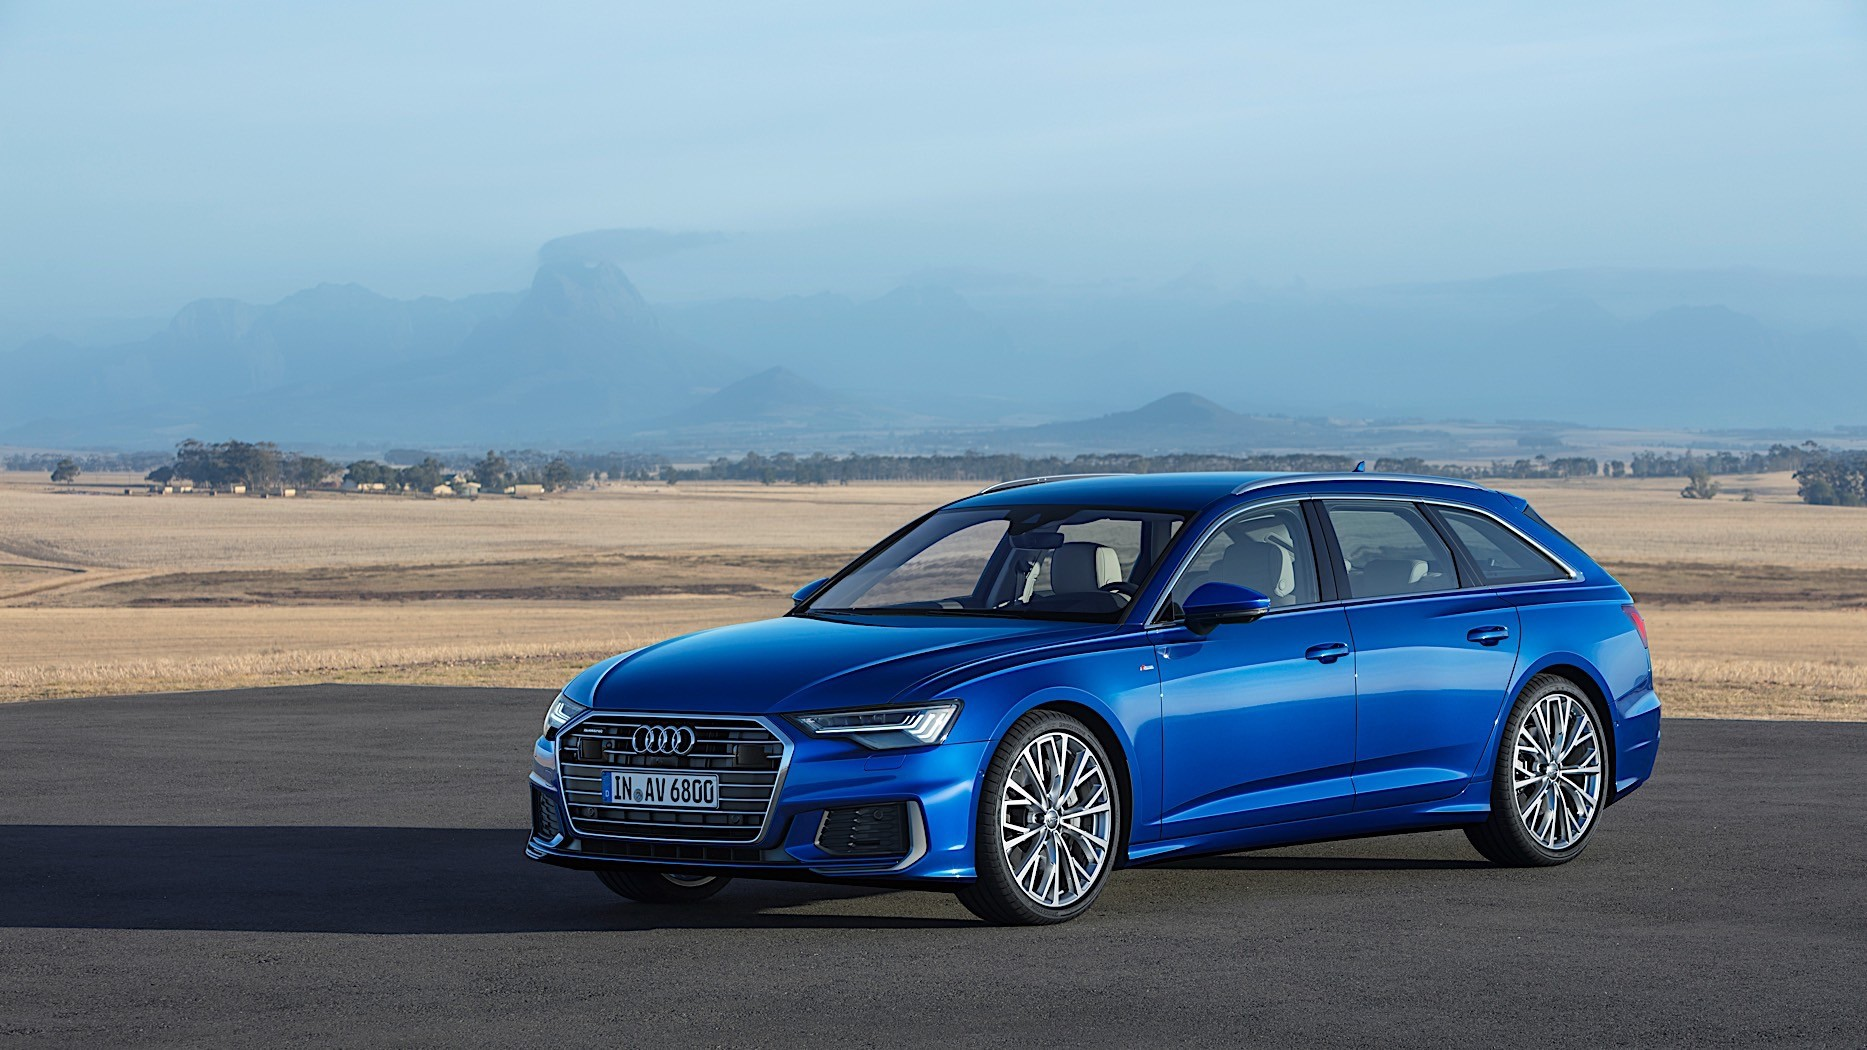 2019 audi a6 avant unwrapped with standard mild hybrid autoevolution. Black Bedroom Furniture Sets. Home Design Ideas